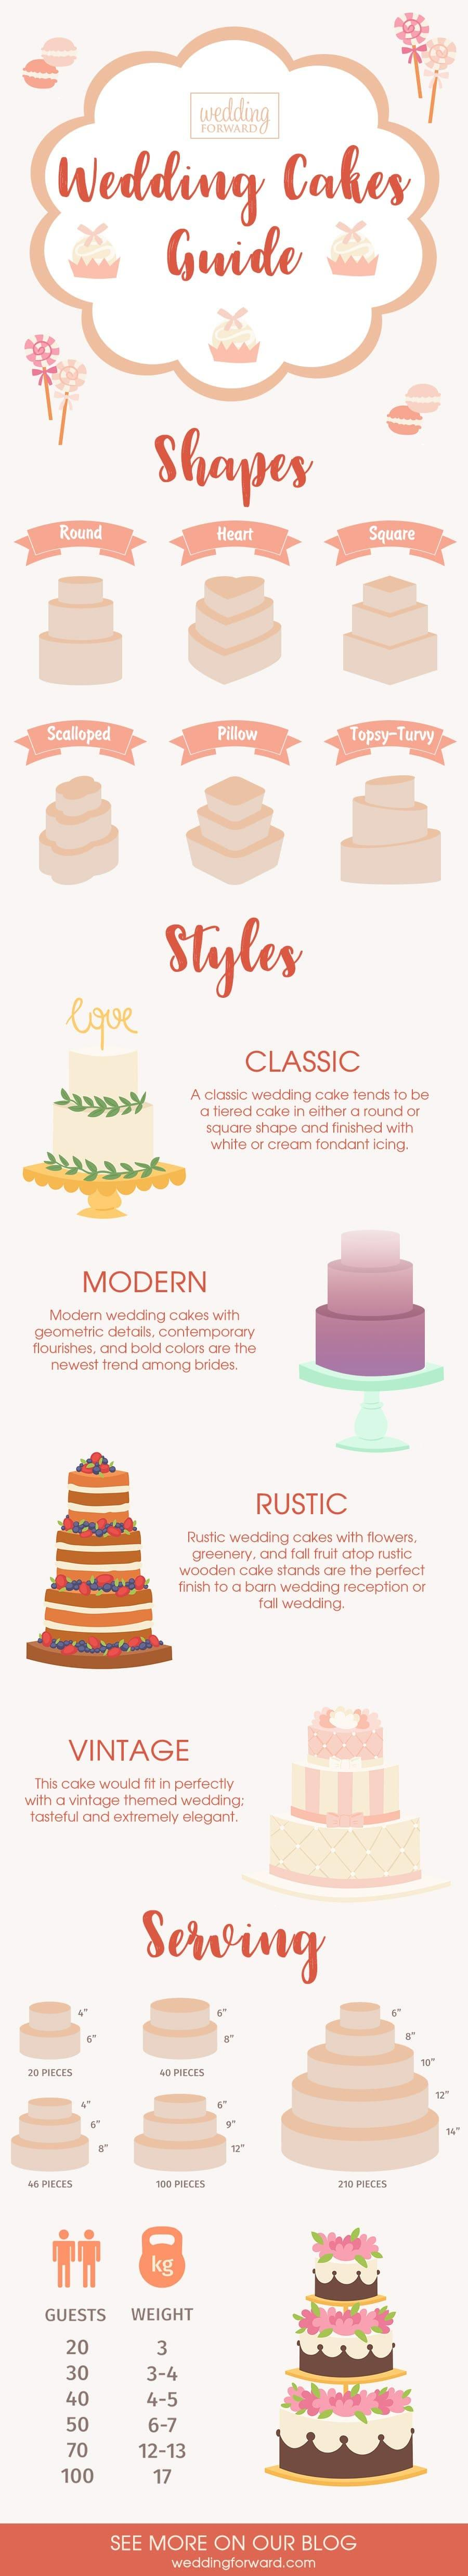 Wedding Cakes Guide